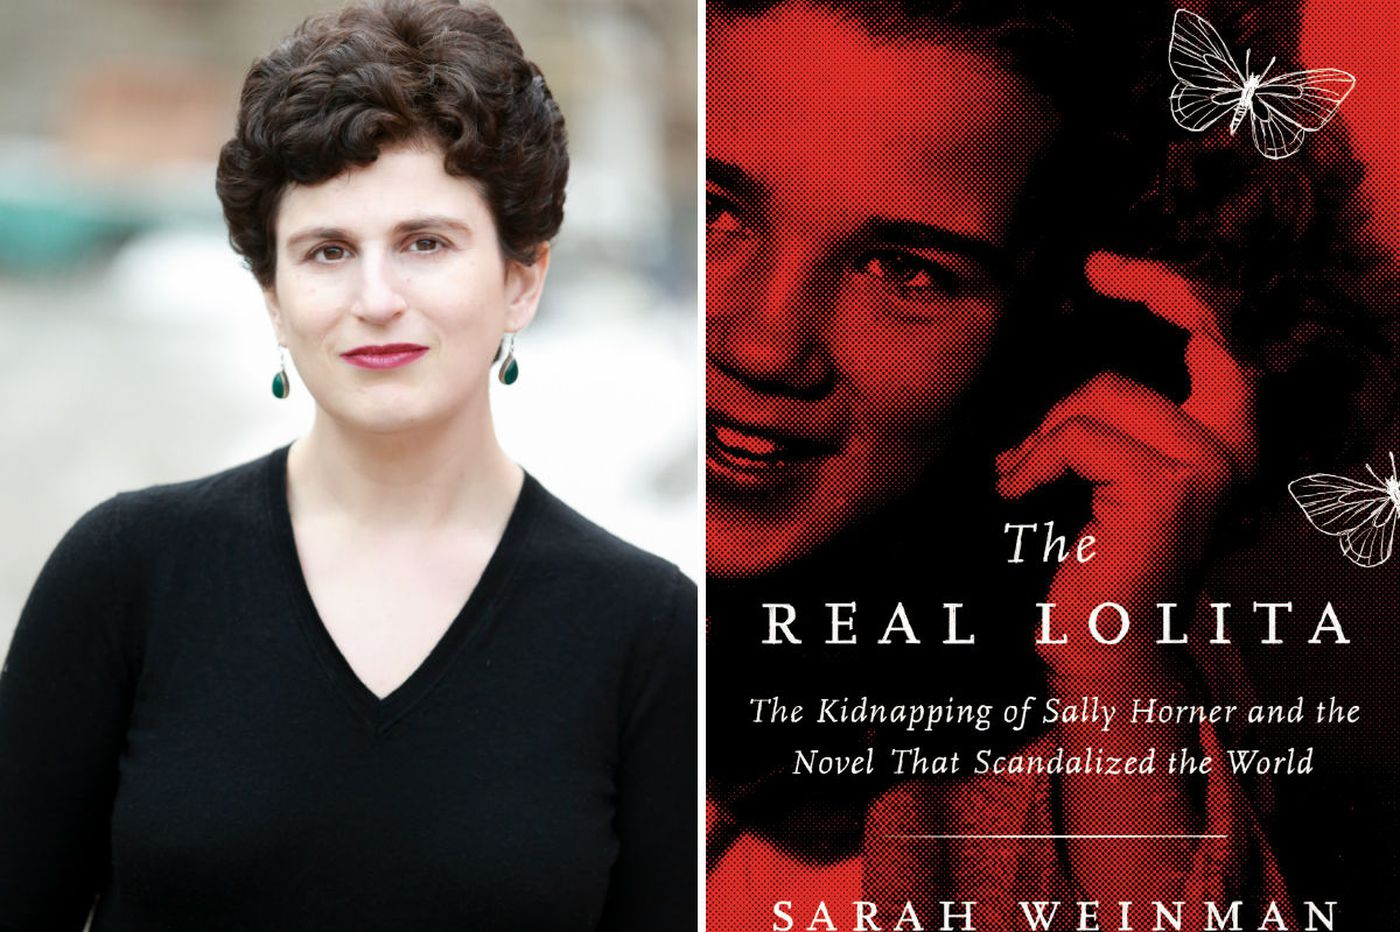 Sarah Weinman's 'The Real Lolita': A girl is kidnapped in Camden, and a great novel is written